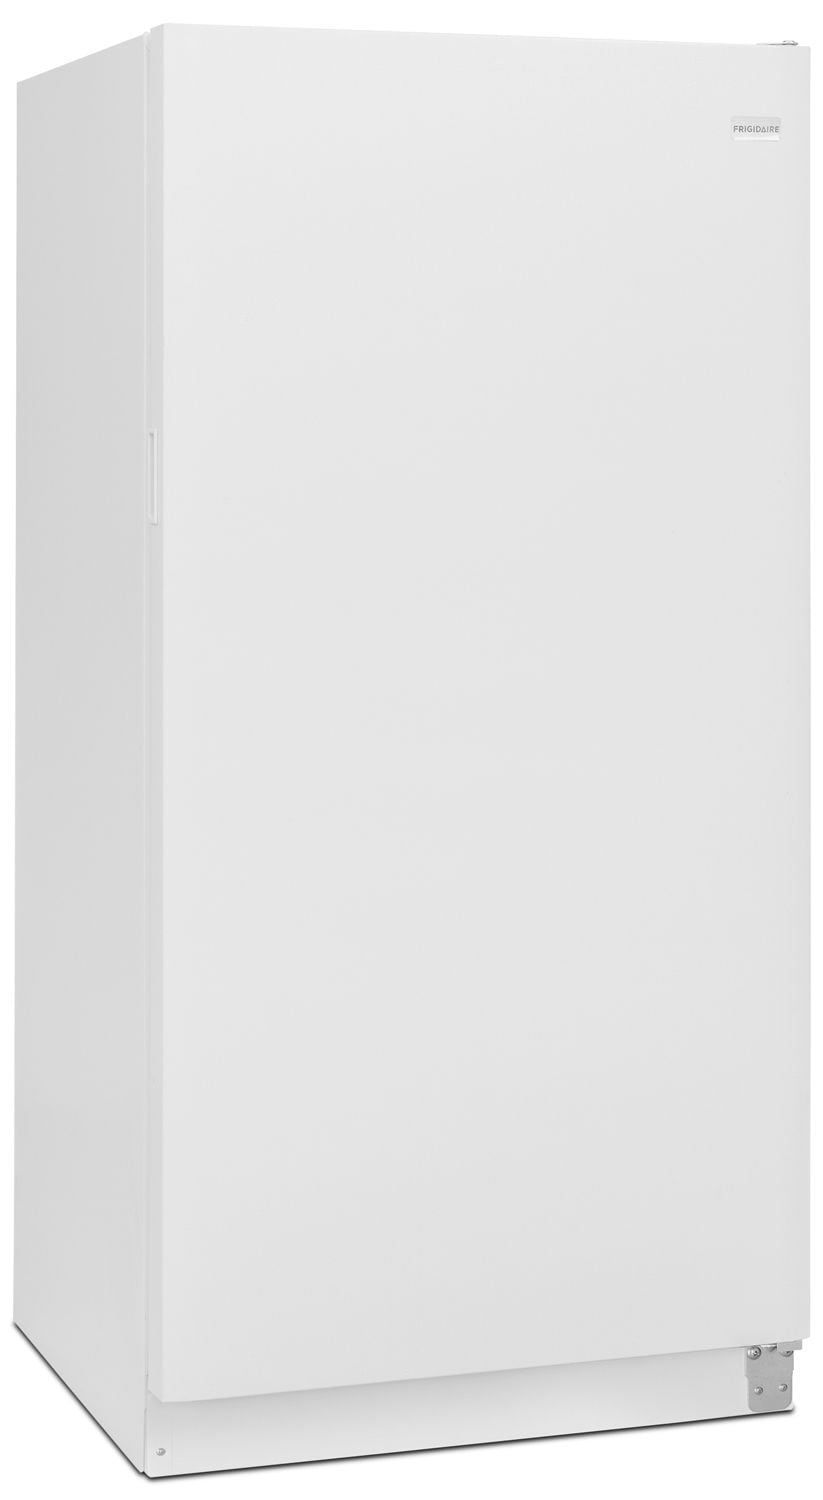 Frigidaire 12.5 Cu. Ft. Upright Freezer - White